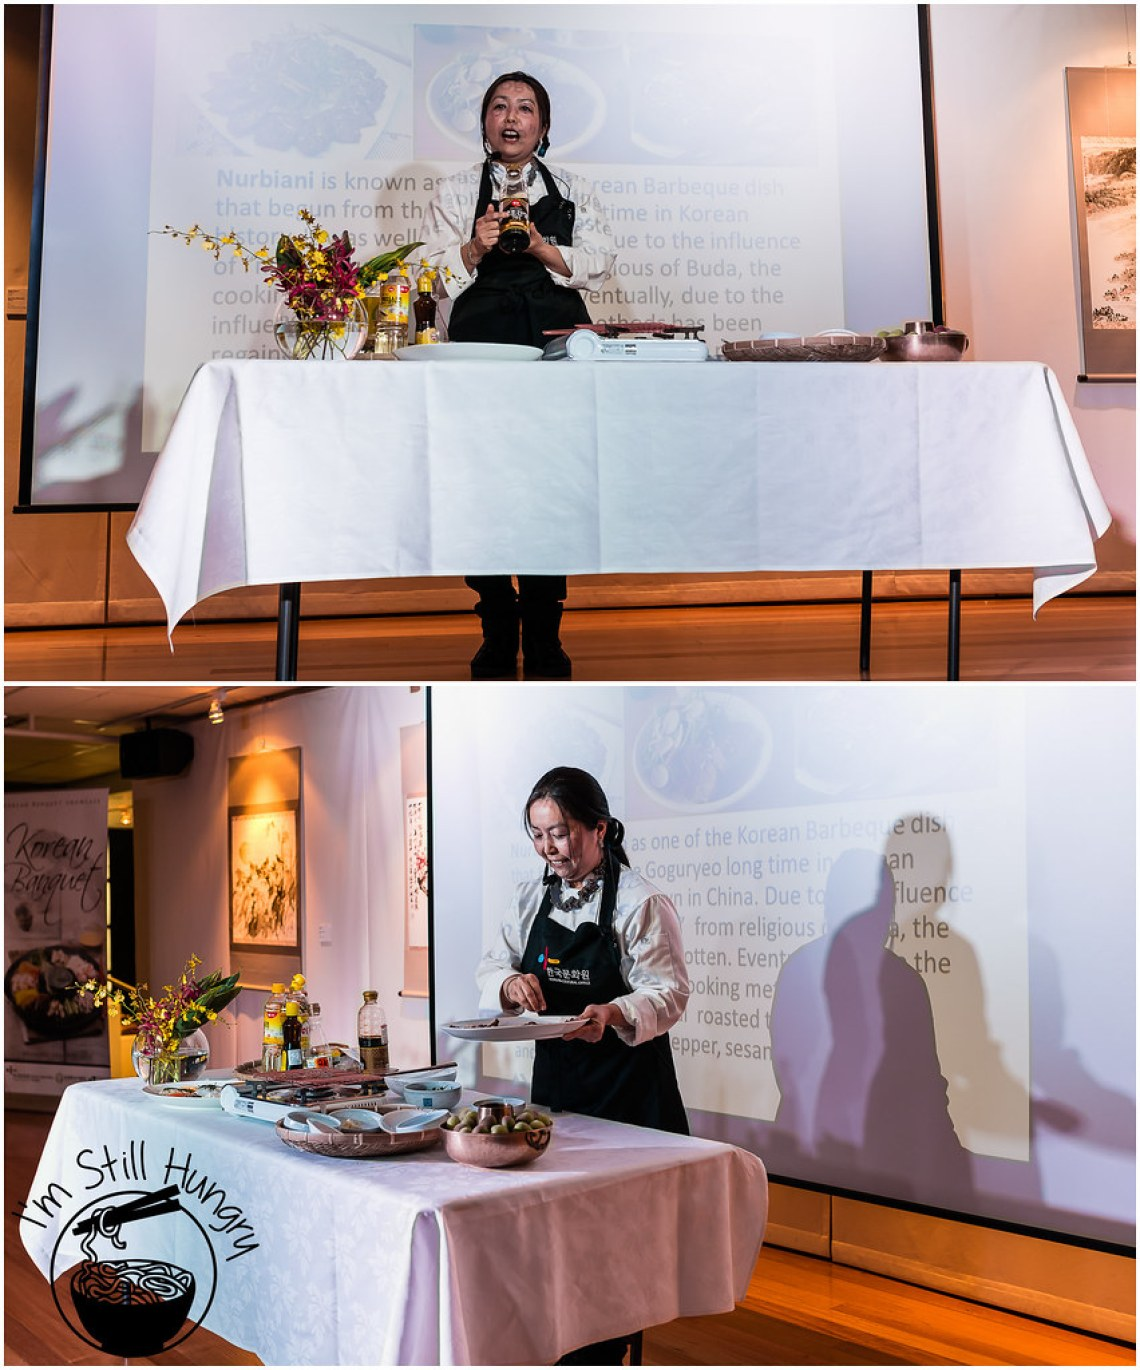 Heather Jeong giving a talk on Nurbiani and Korean fine dining korean banquet showcase